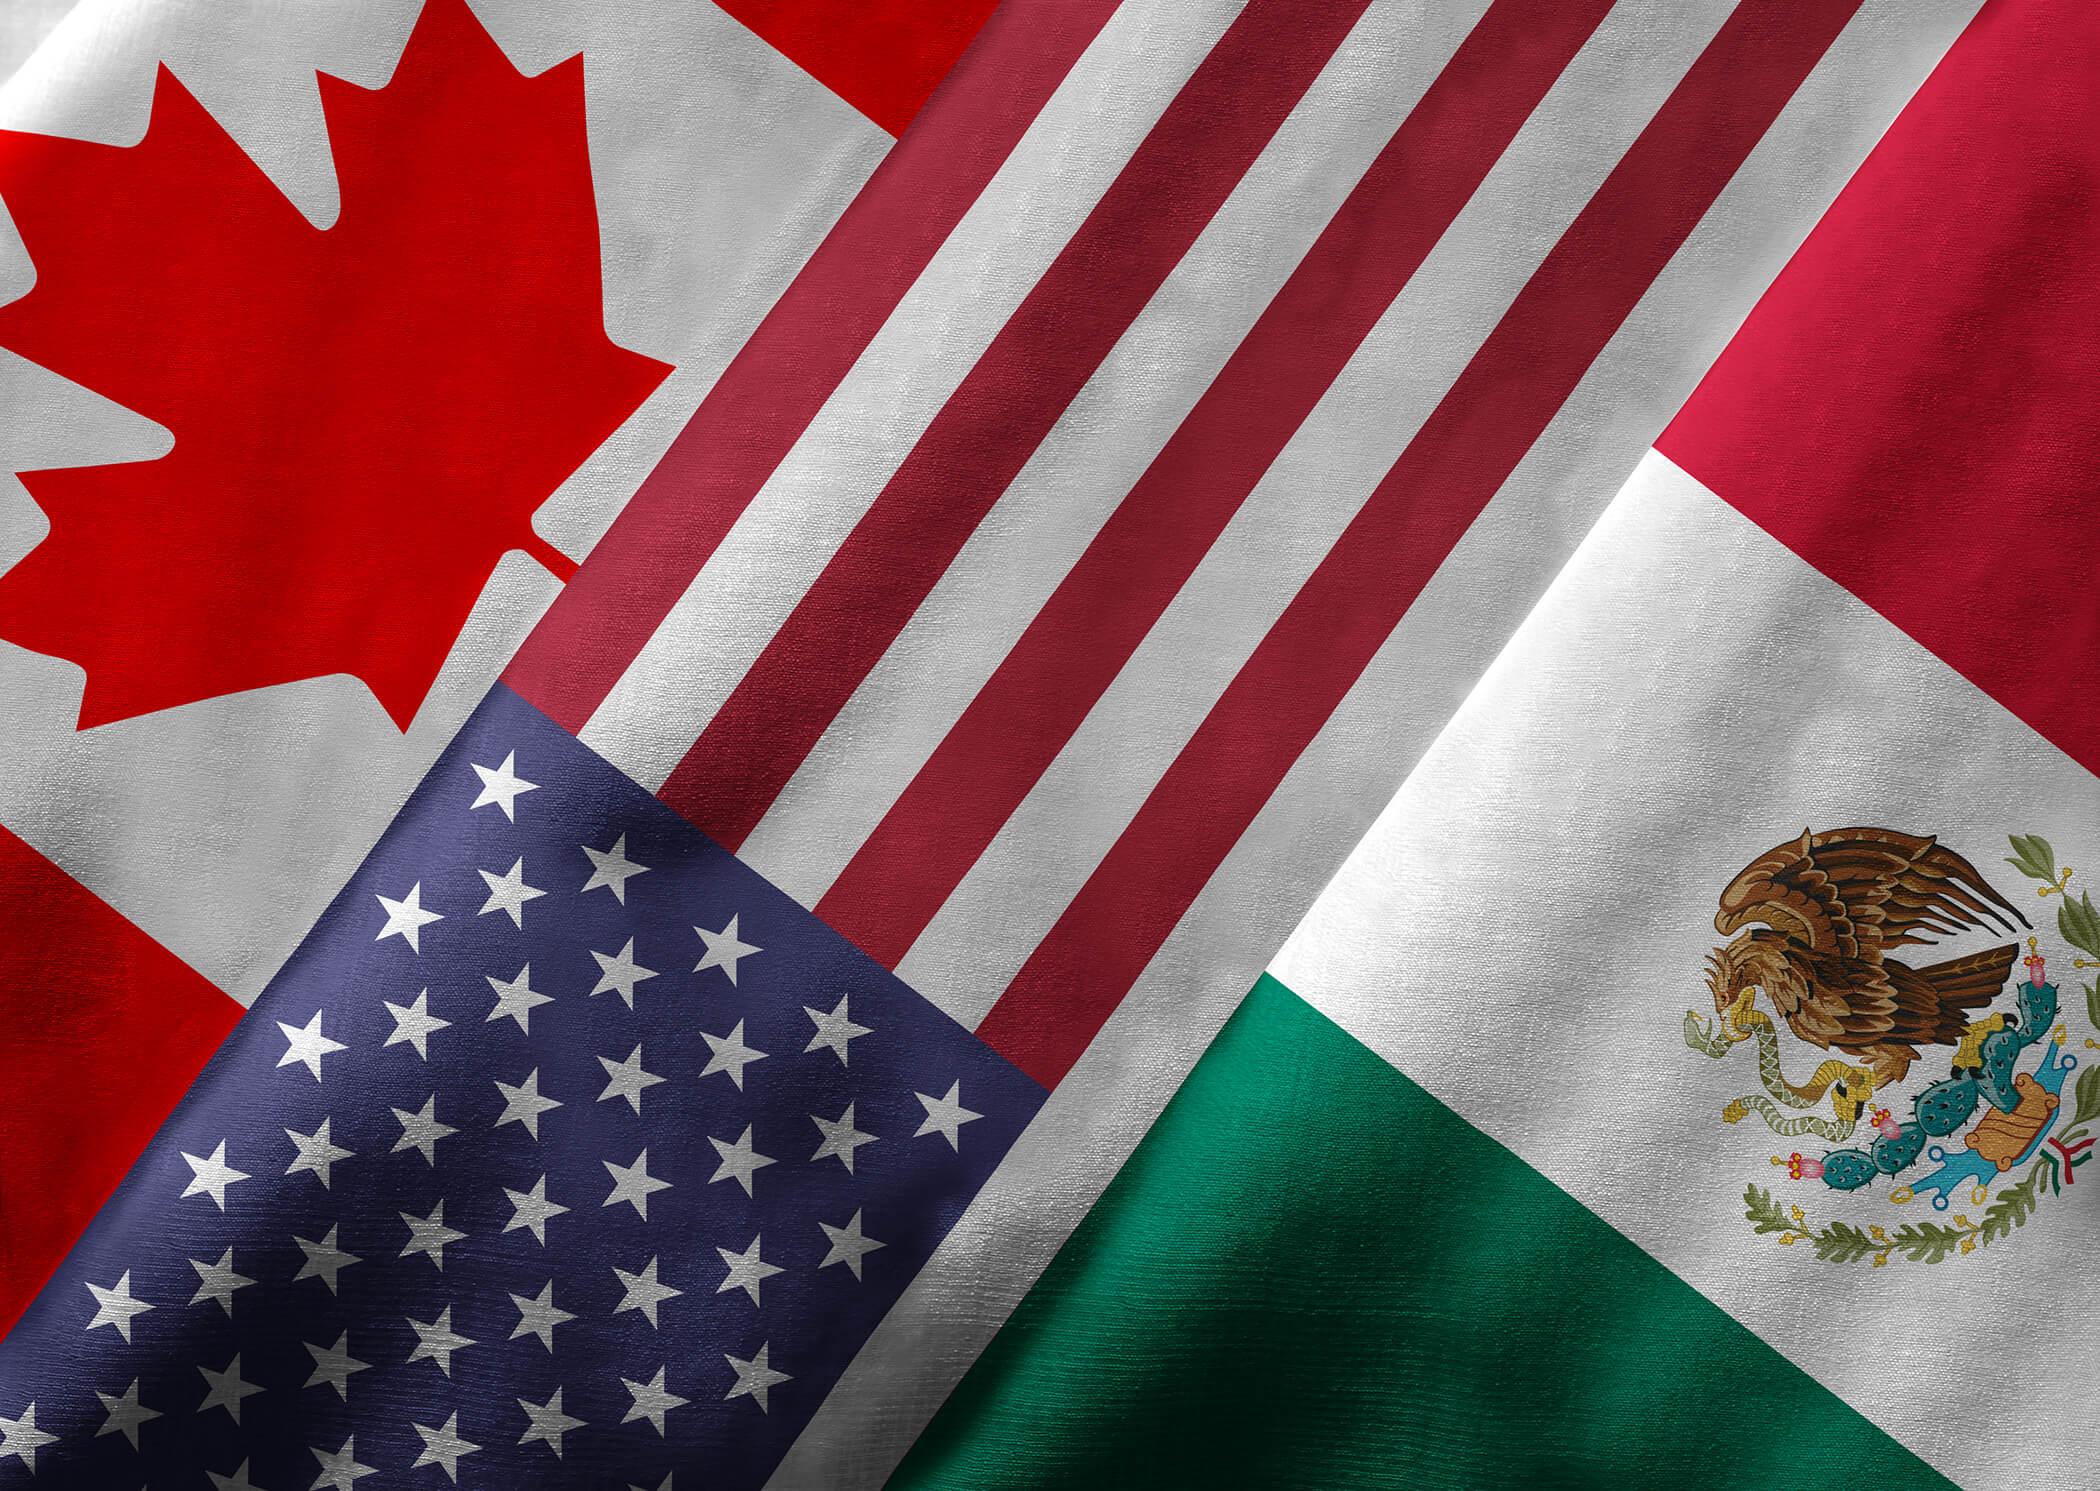 NAFTA AND SUPPLY MANAGEMENT